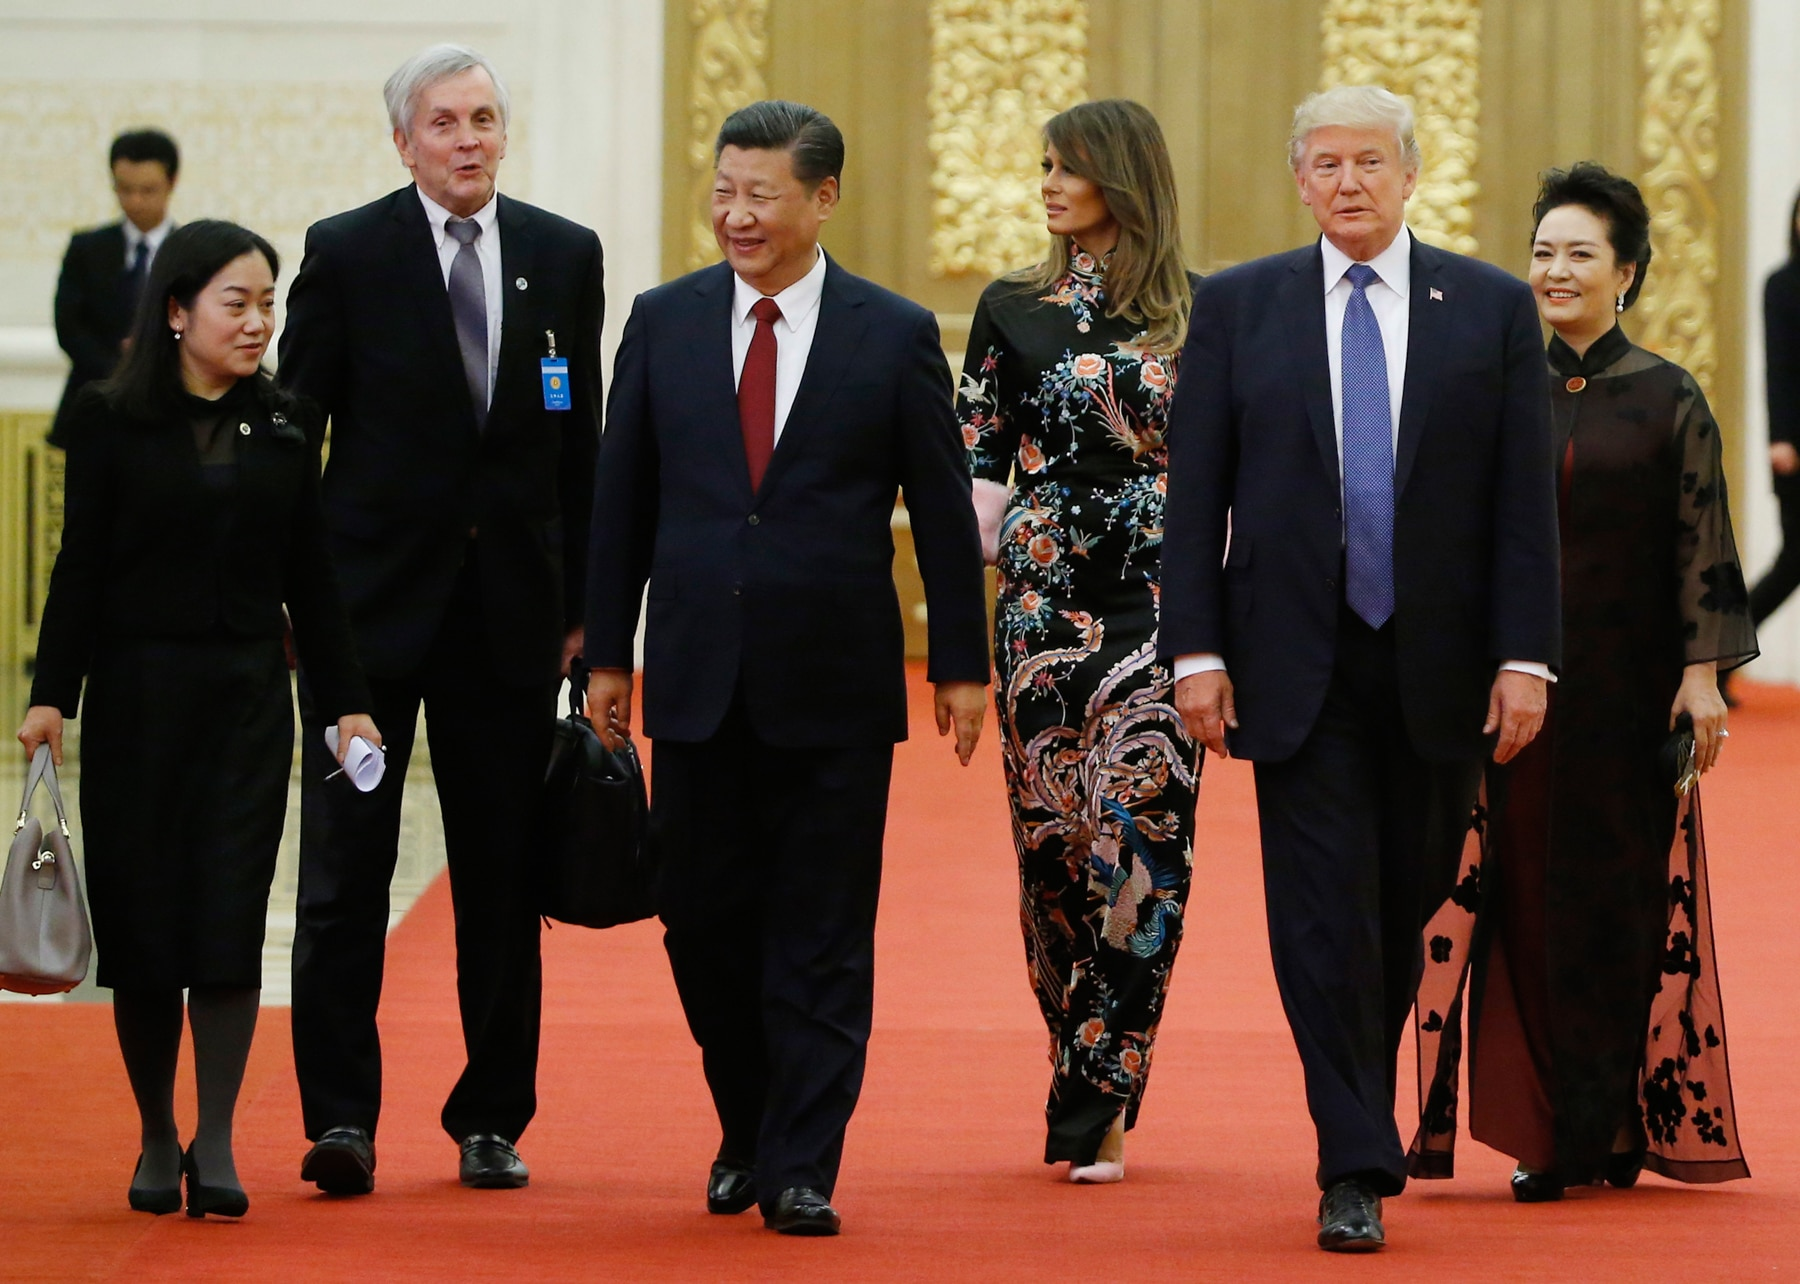 U.S. President Donald Trump and Chinese President Xi Jinping walking on red carpet with their wives (© AP Images)